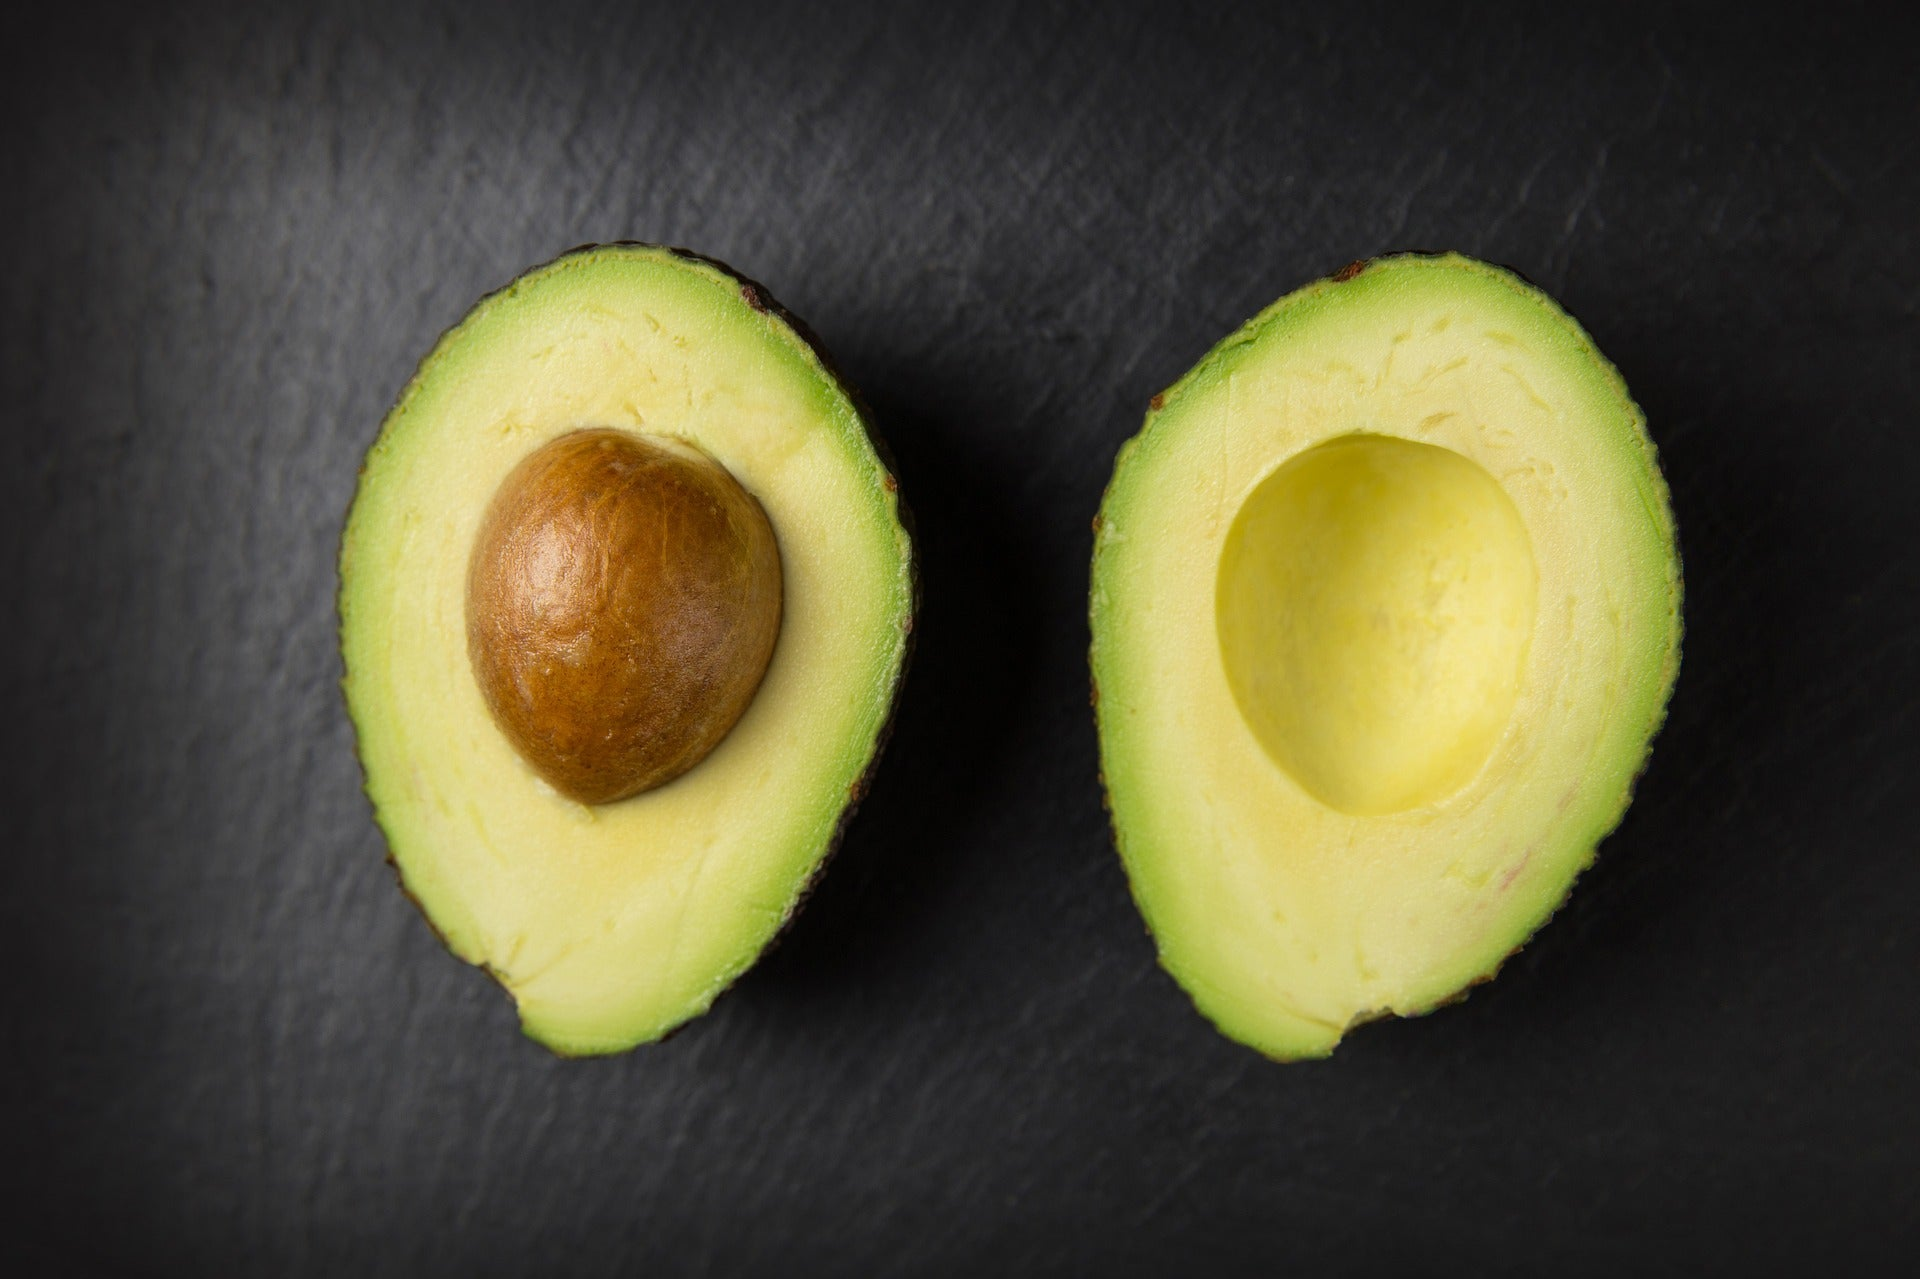 You're throwing away the healthiest part of the avocado